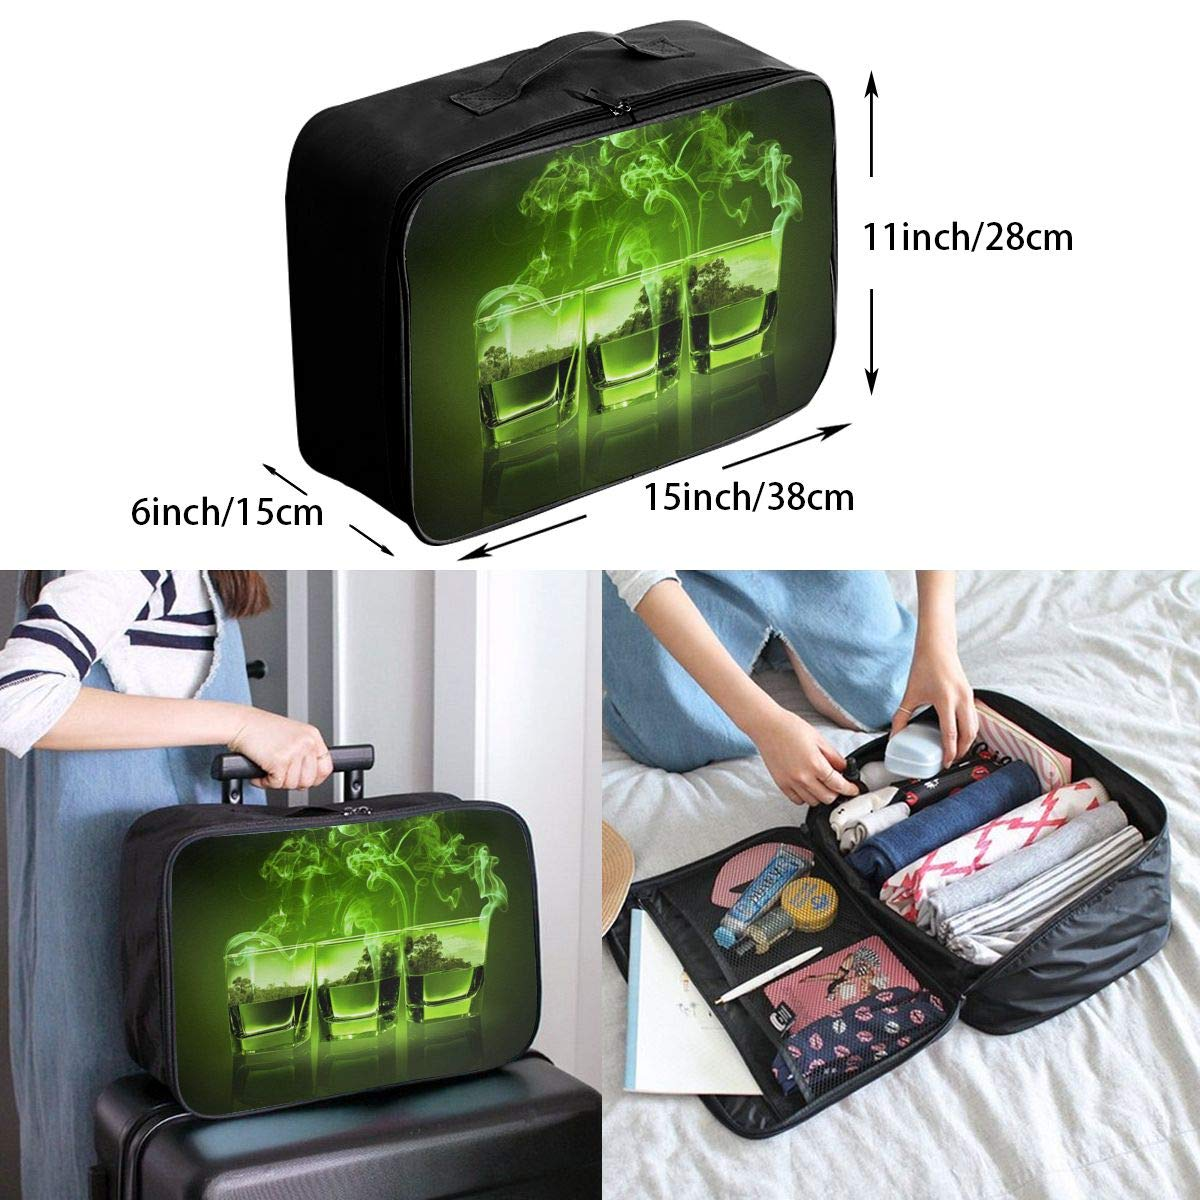 Travel Luggage Duffle Bag Lightweight Portable Handbag Green Cocktail Large Capacity Waterproof Foldable Storage Tote